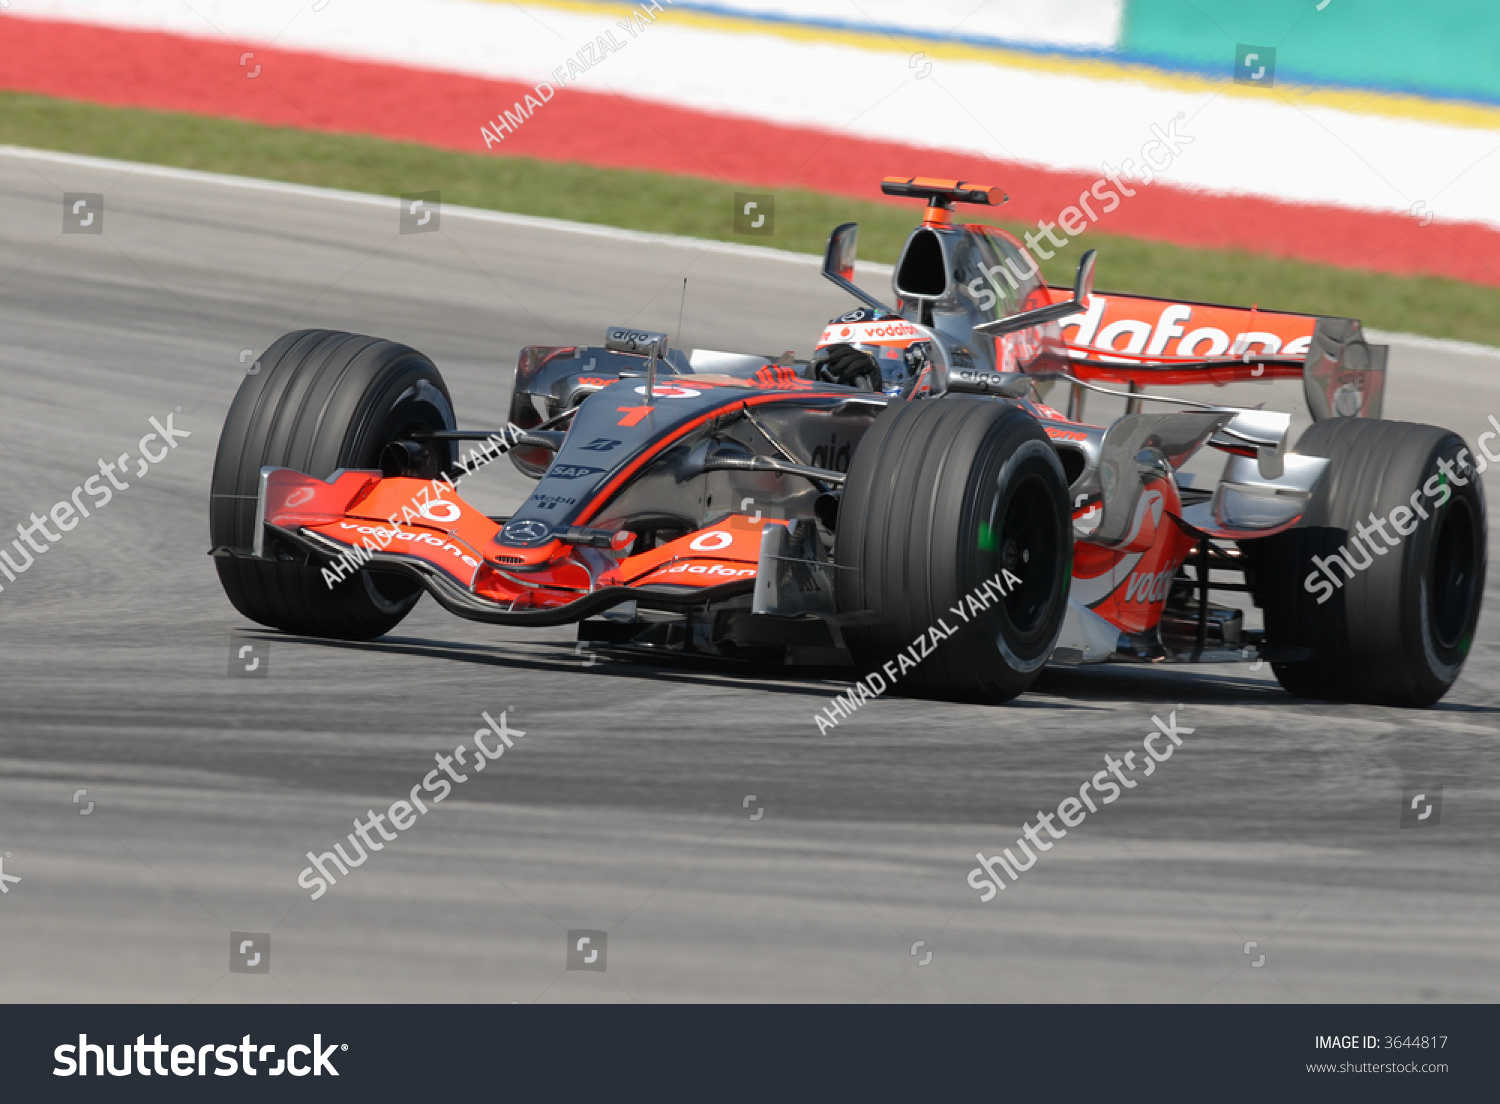 Fernando Alonso F1 Grand Prix Fernando Alonso Negotiating Turn Sepang F 1 Stock Photo Edit Now